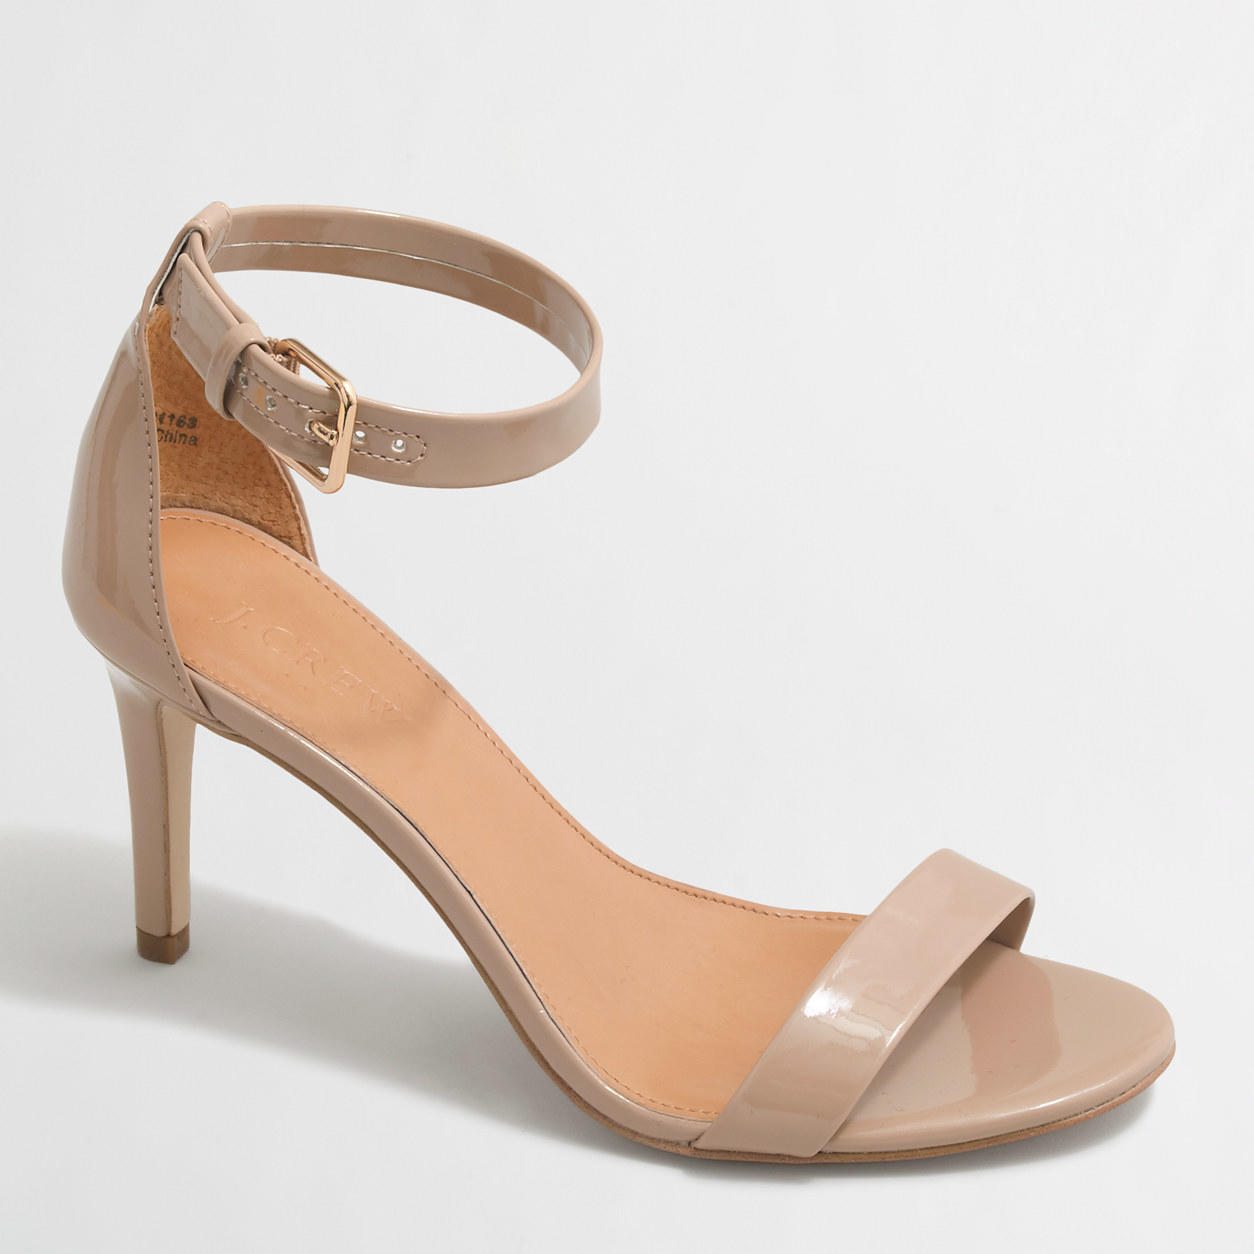 Factory Patent High Heel Sandals Shoes From J Crew Factory